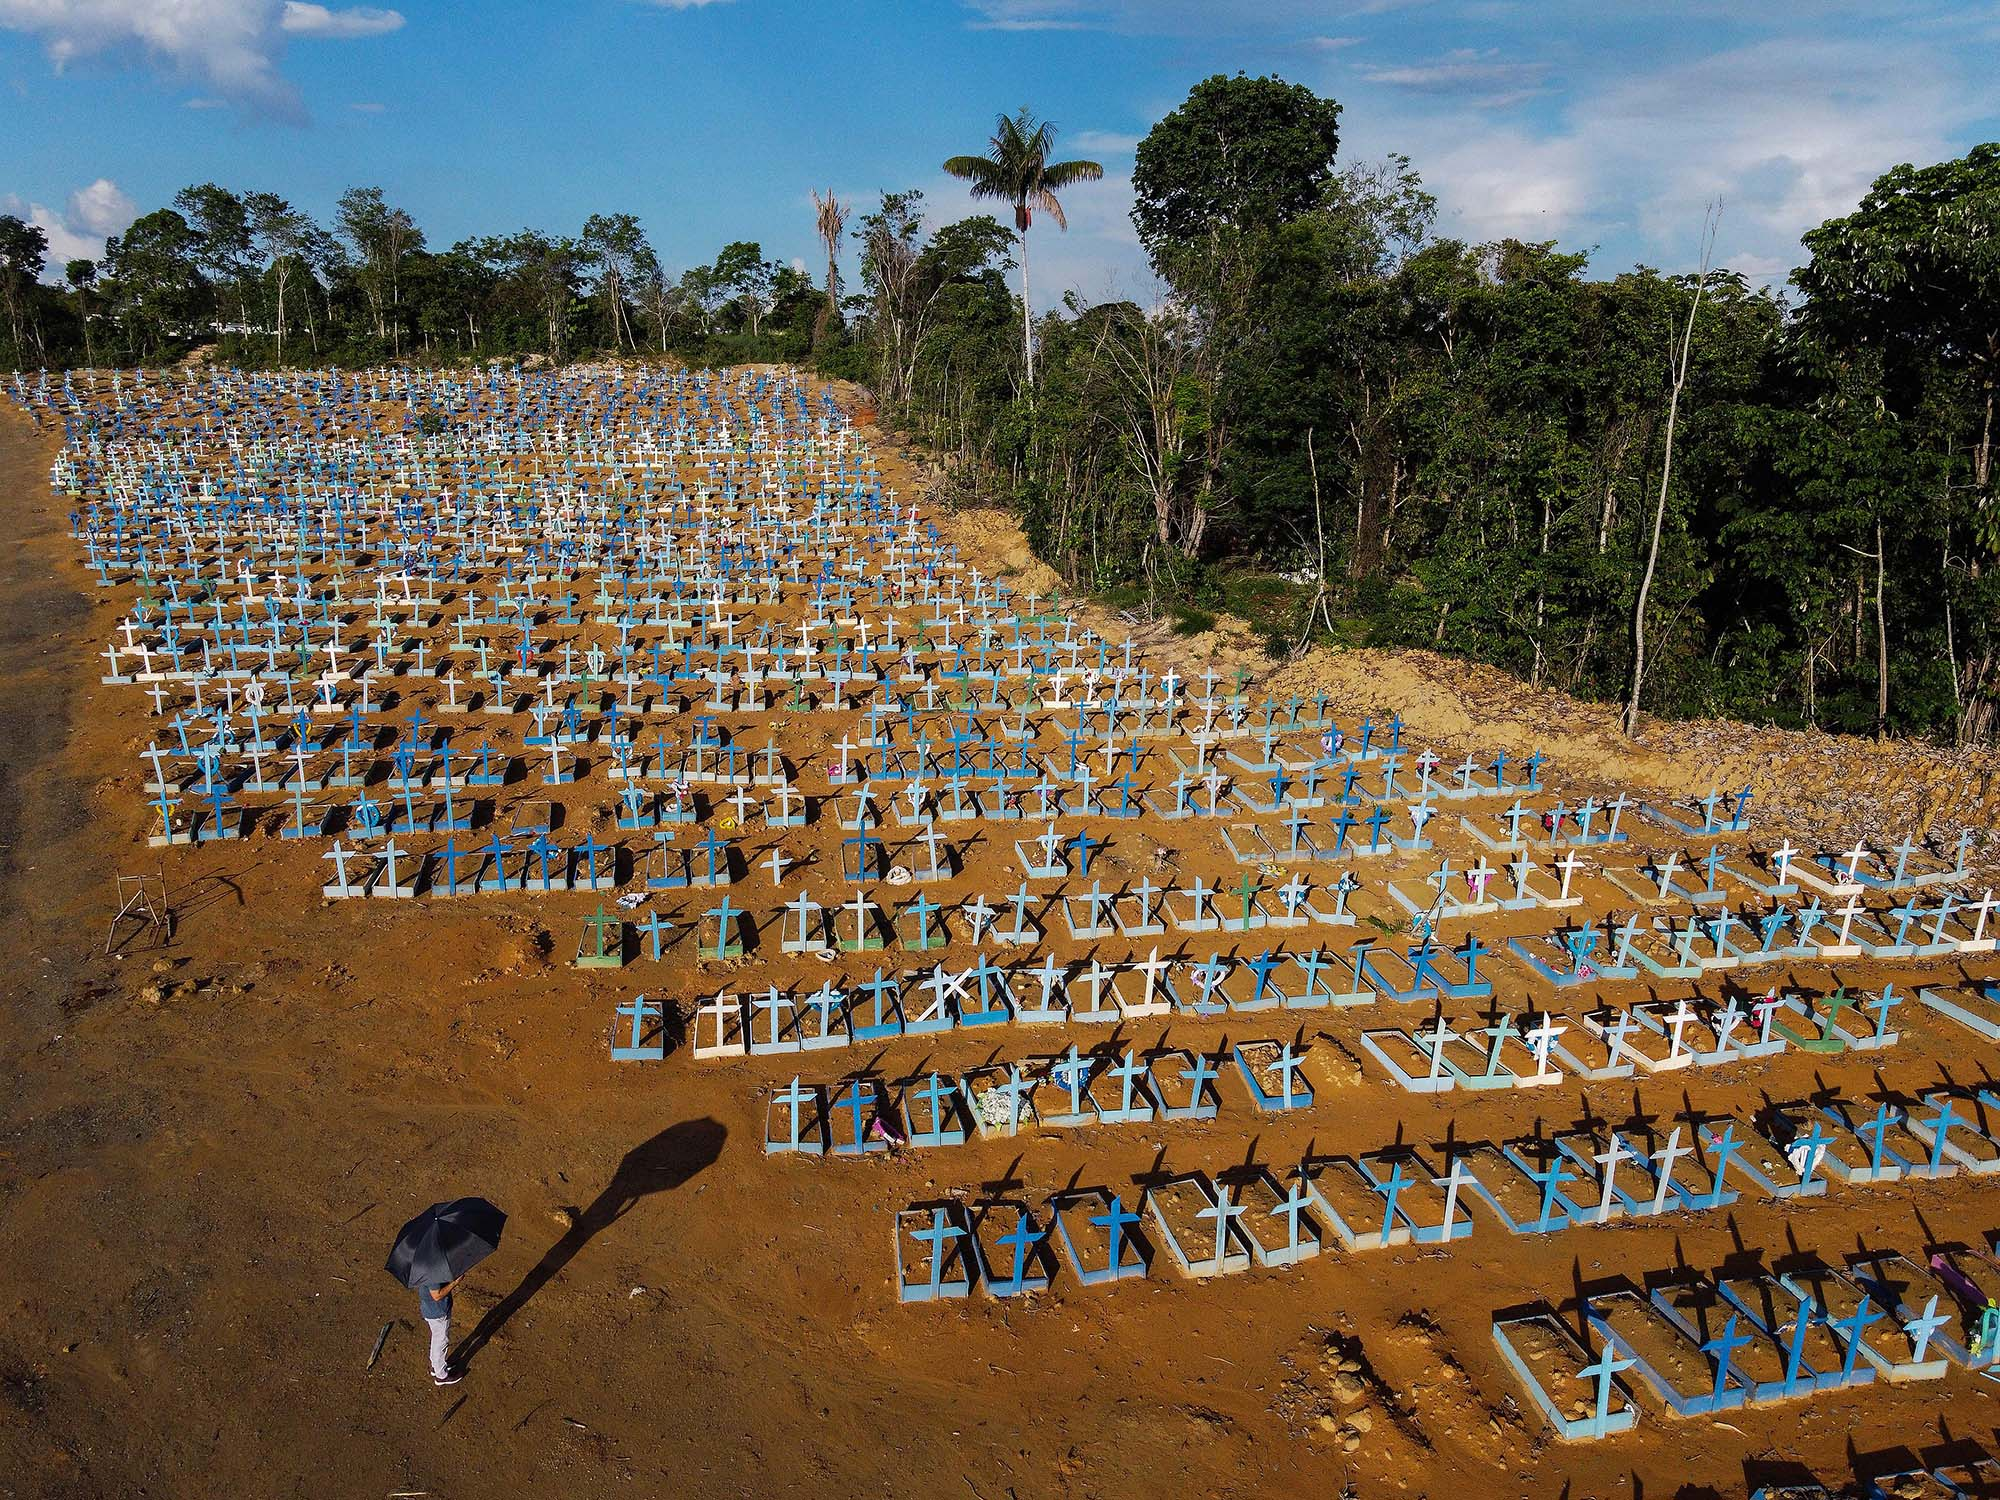 An aerial view of victims of the COVID pandemic buried at the Nossa Senhora Aparecida cemetery in Manaus, Brazil, on November 21.